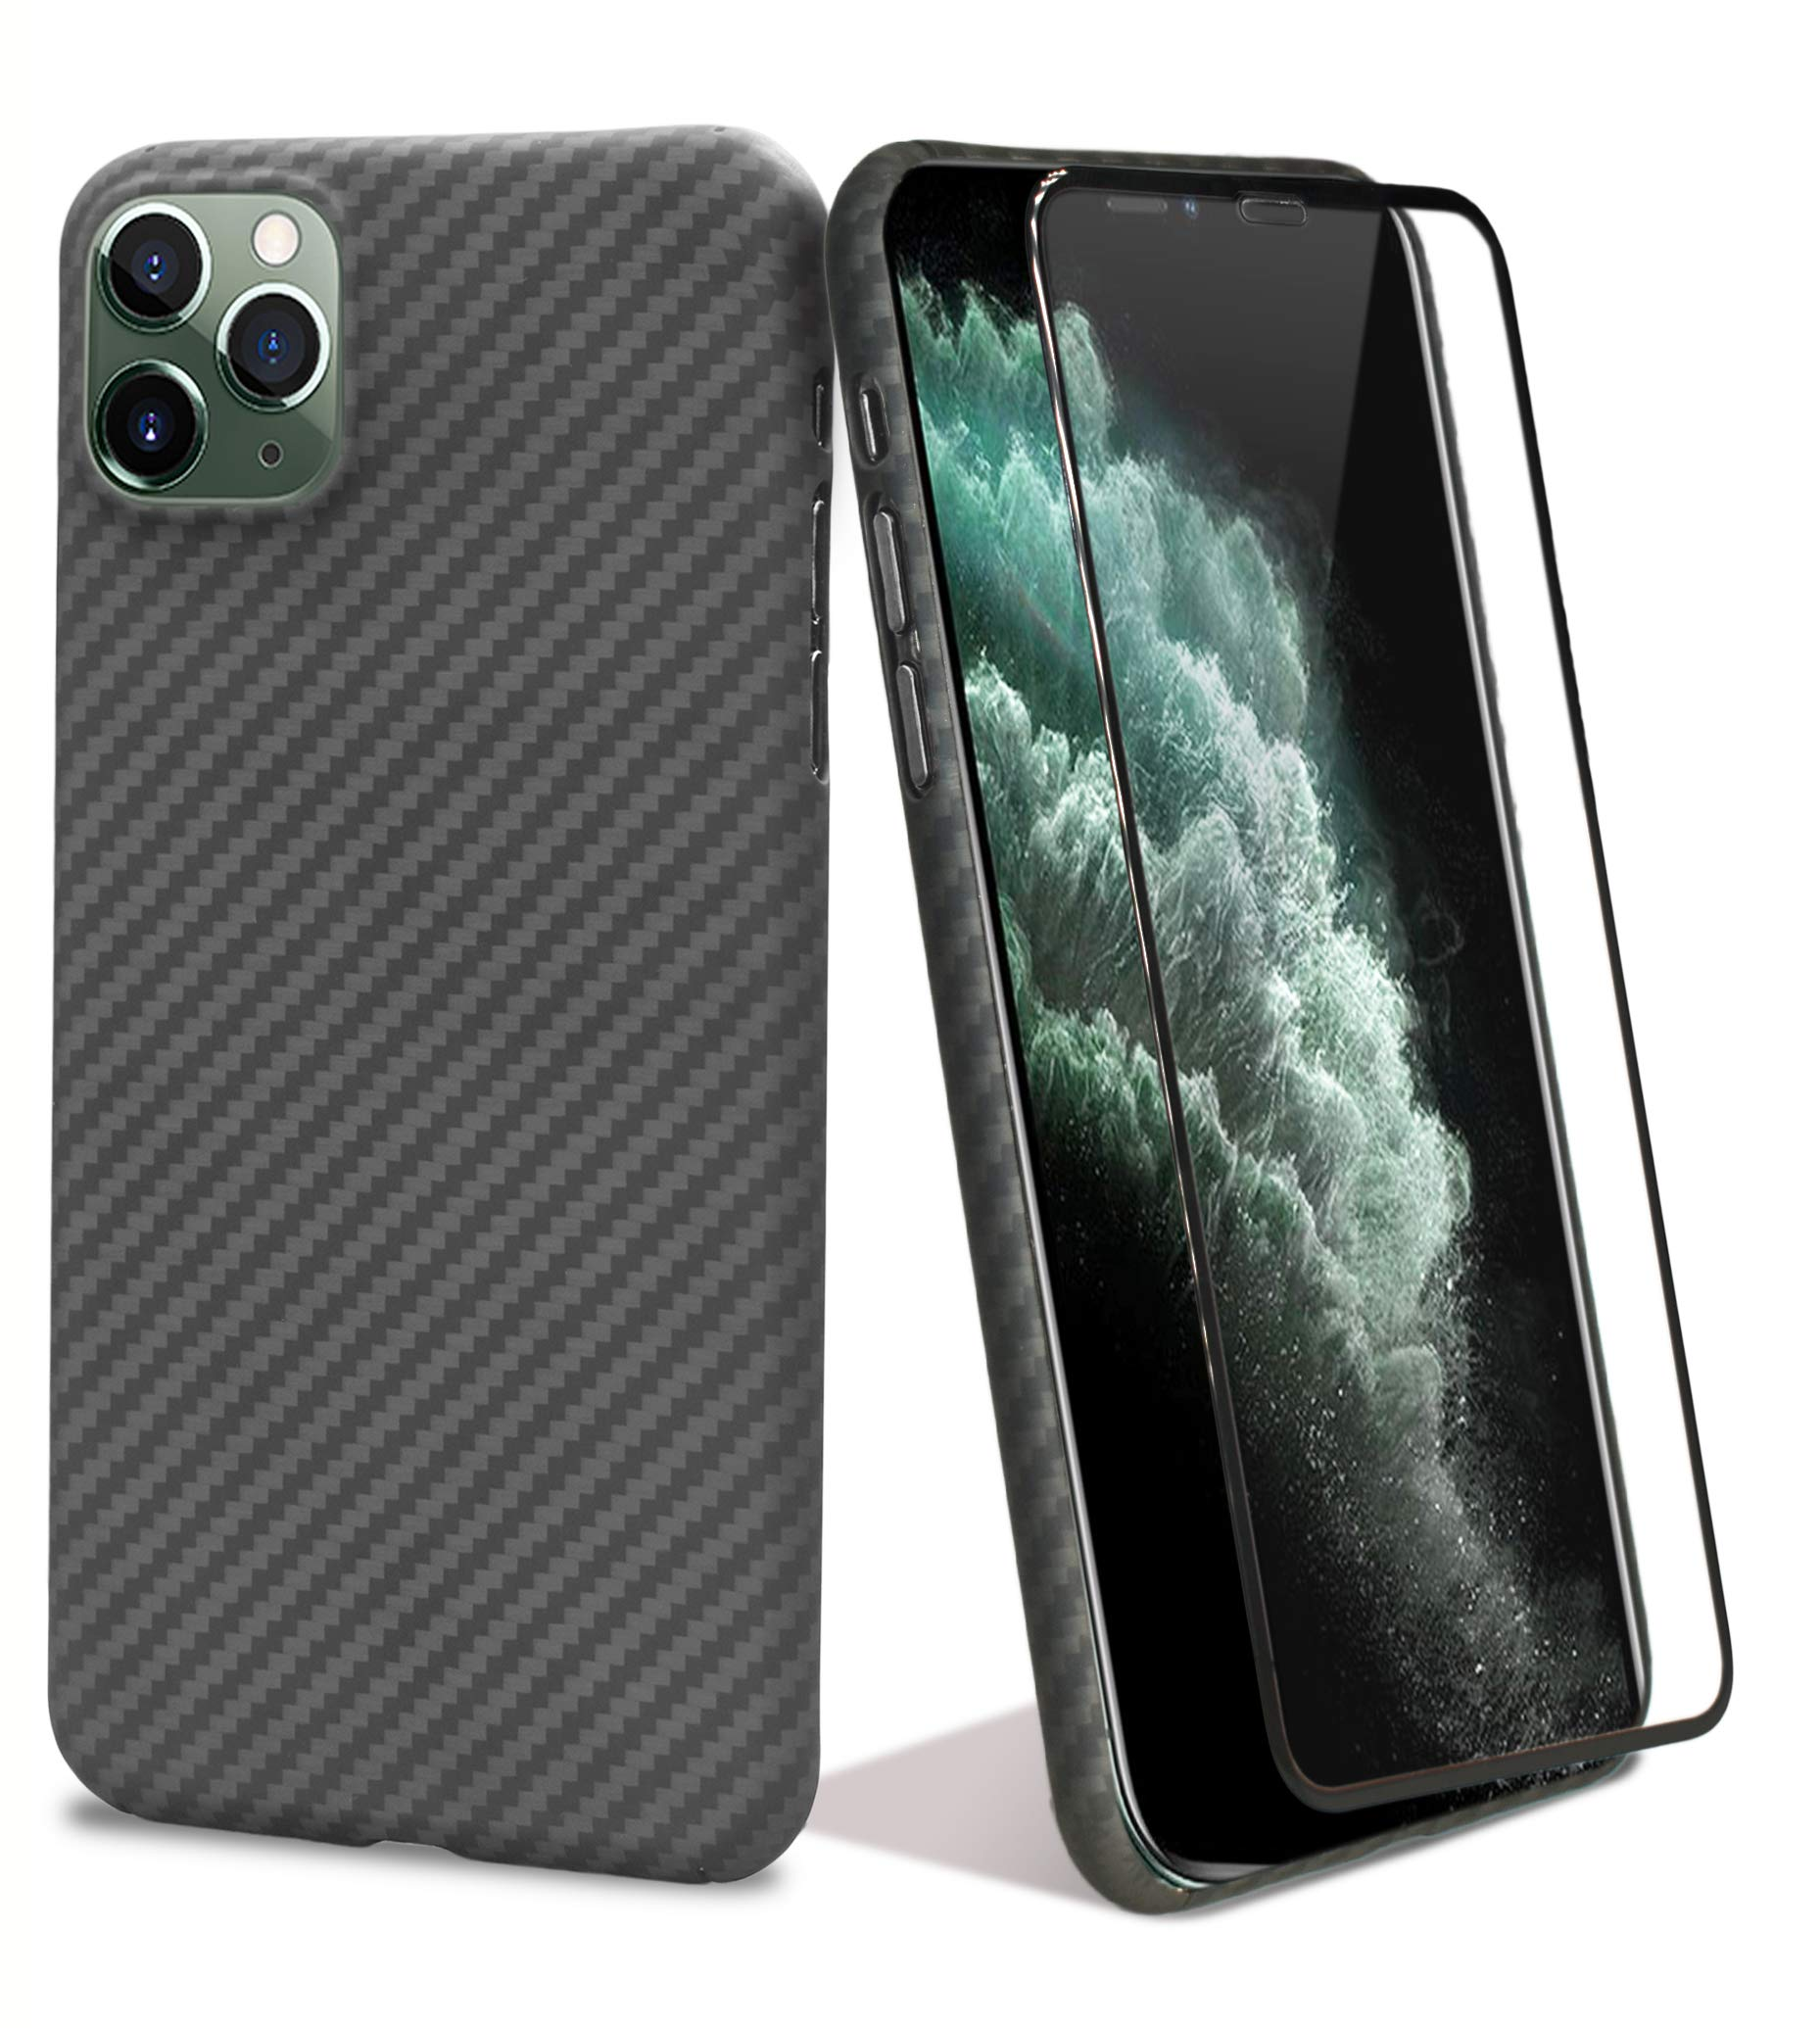 chitri iPhone 11 Pro Max Carbon Fiber Slim Case, Aramid Fiber [Real Body Armor Material] Minimalist Strongest Durable Scratch Resistant Ultra-Thin Perfectly Fit Cover for iPhone 11 Pro Max 6.5 inch